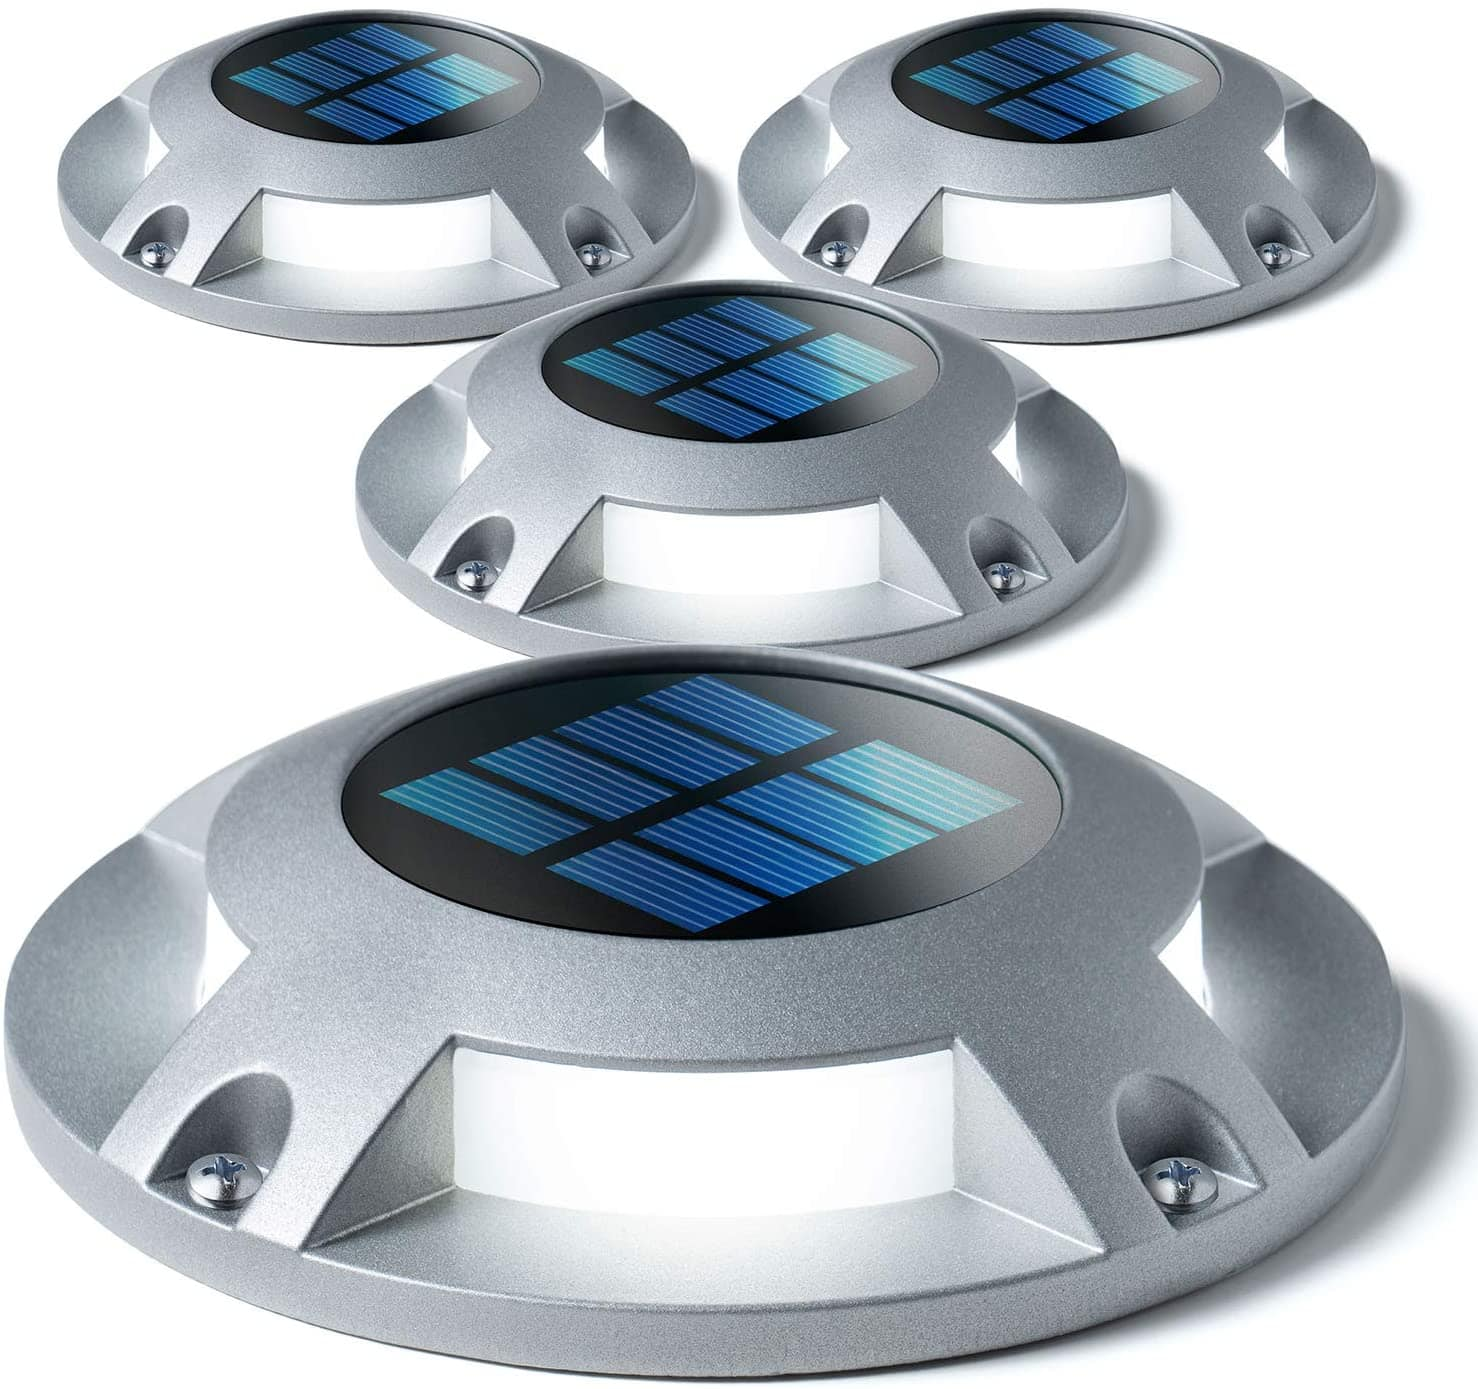 4 Pack Outdoor Solar Deck Lights Silver or Black - $16.49 + Free Shipping